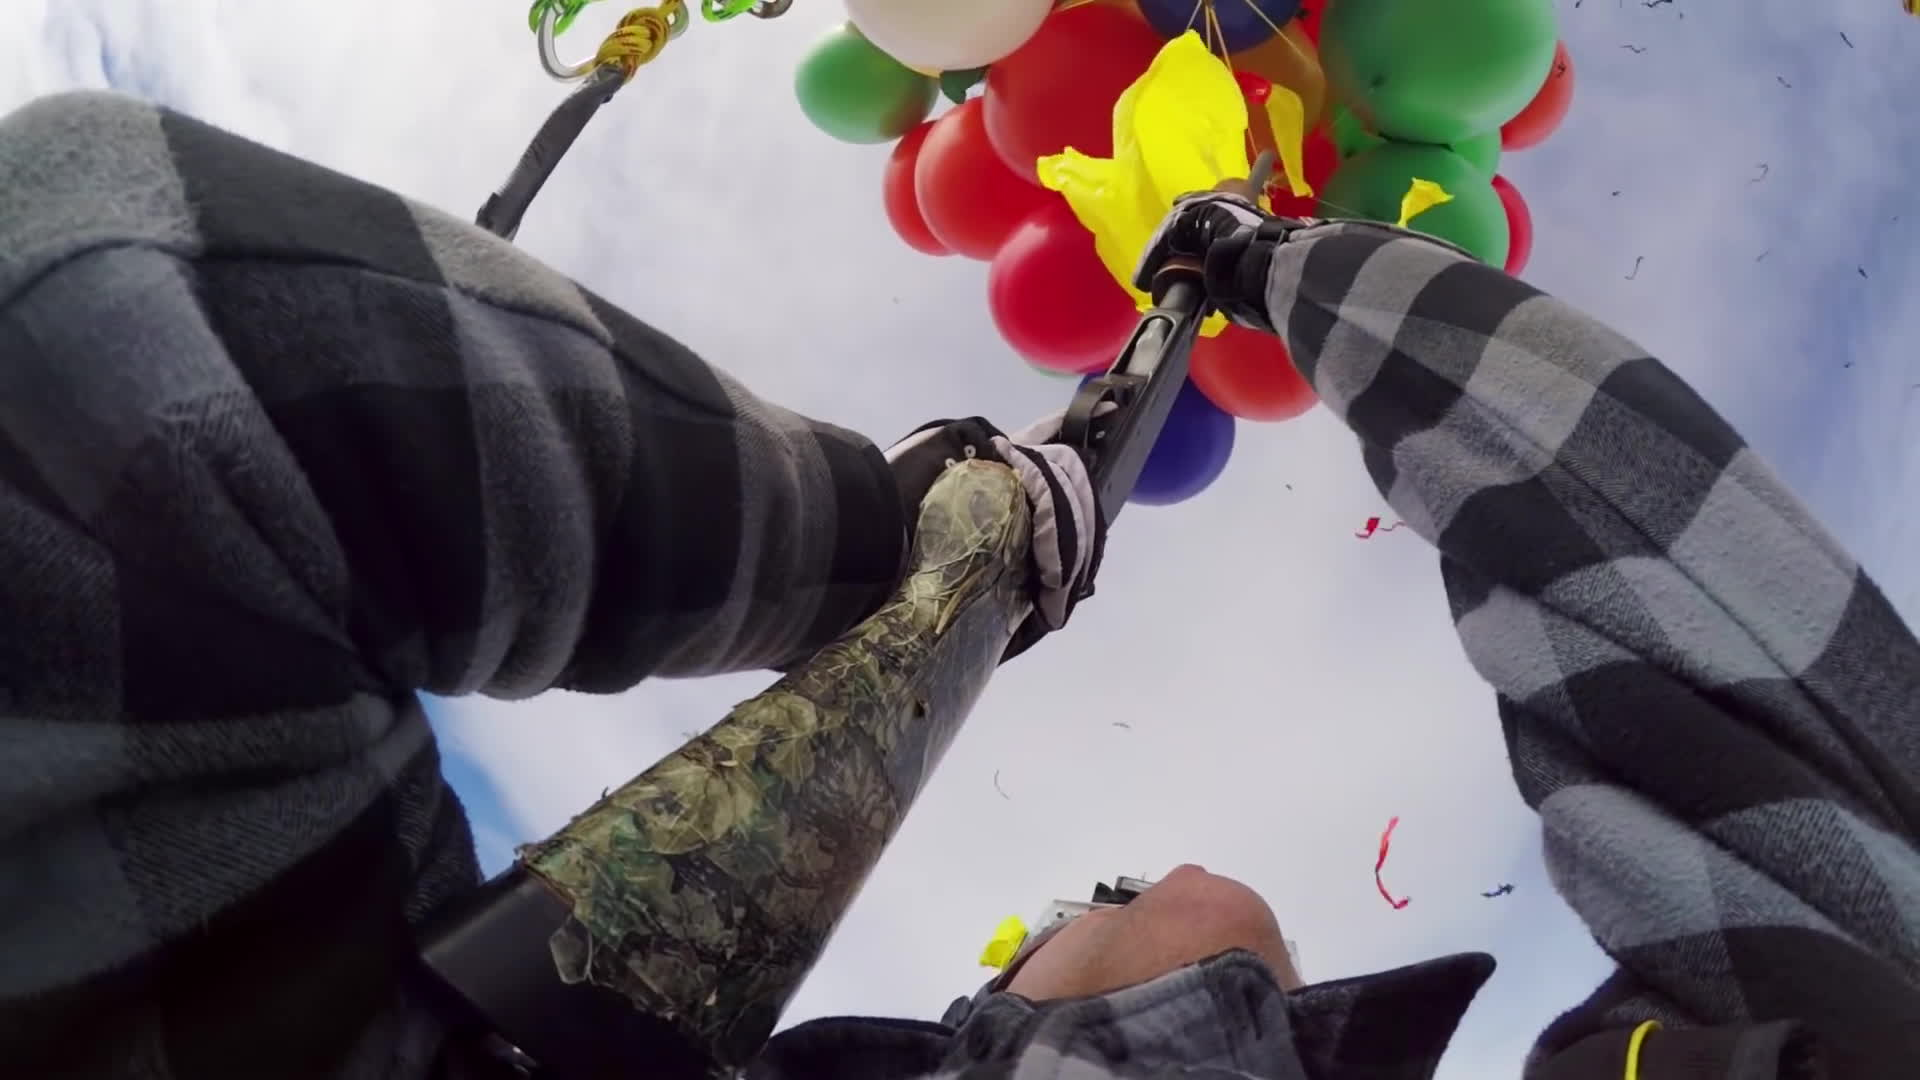 gopro, hero 2, hero 3, GoPro: Shotgun Balloon Drop GIFs